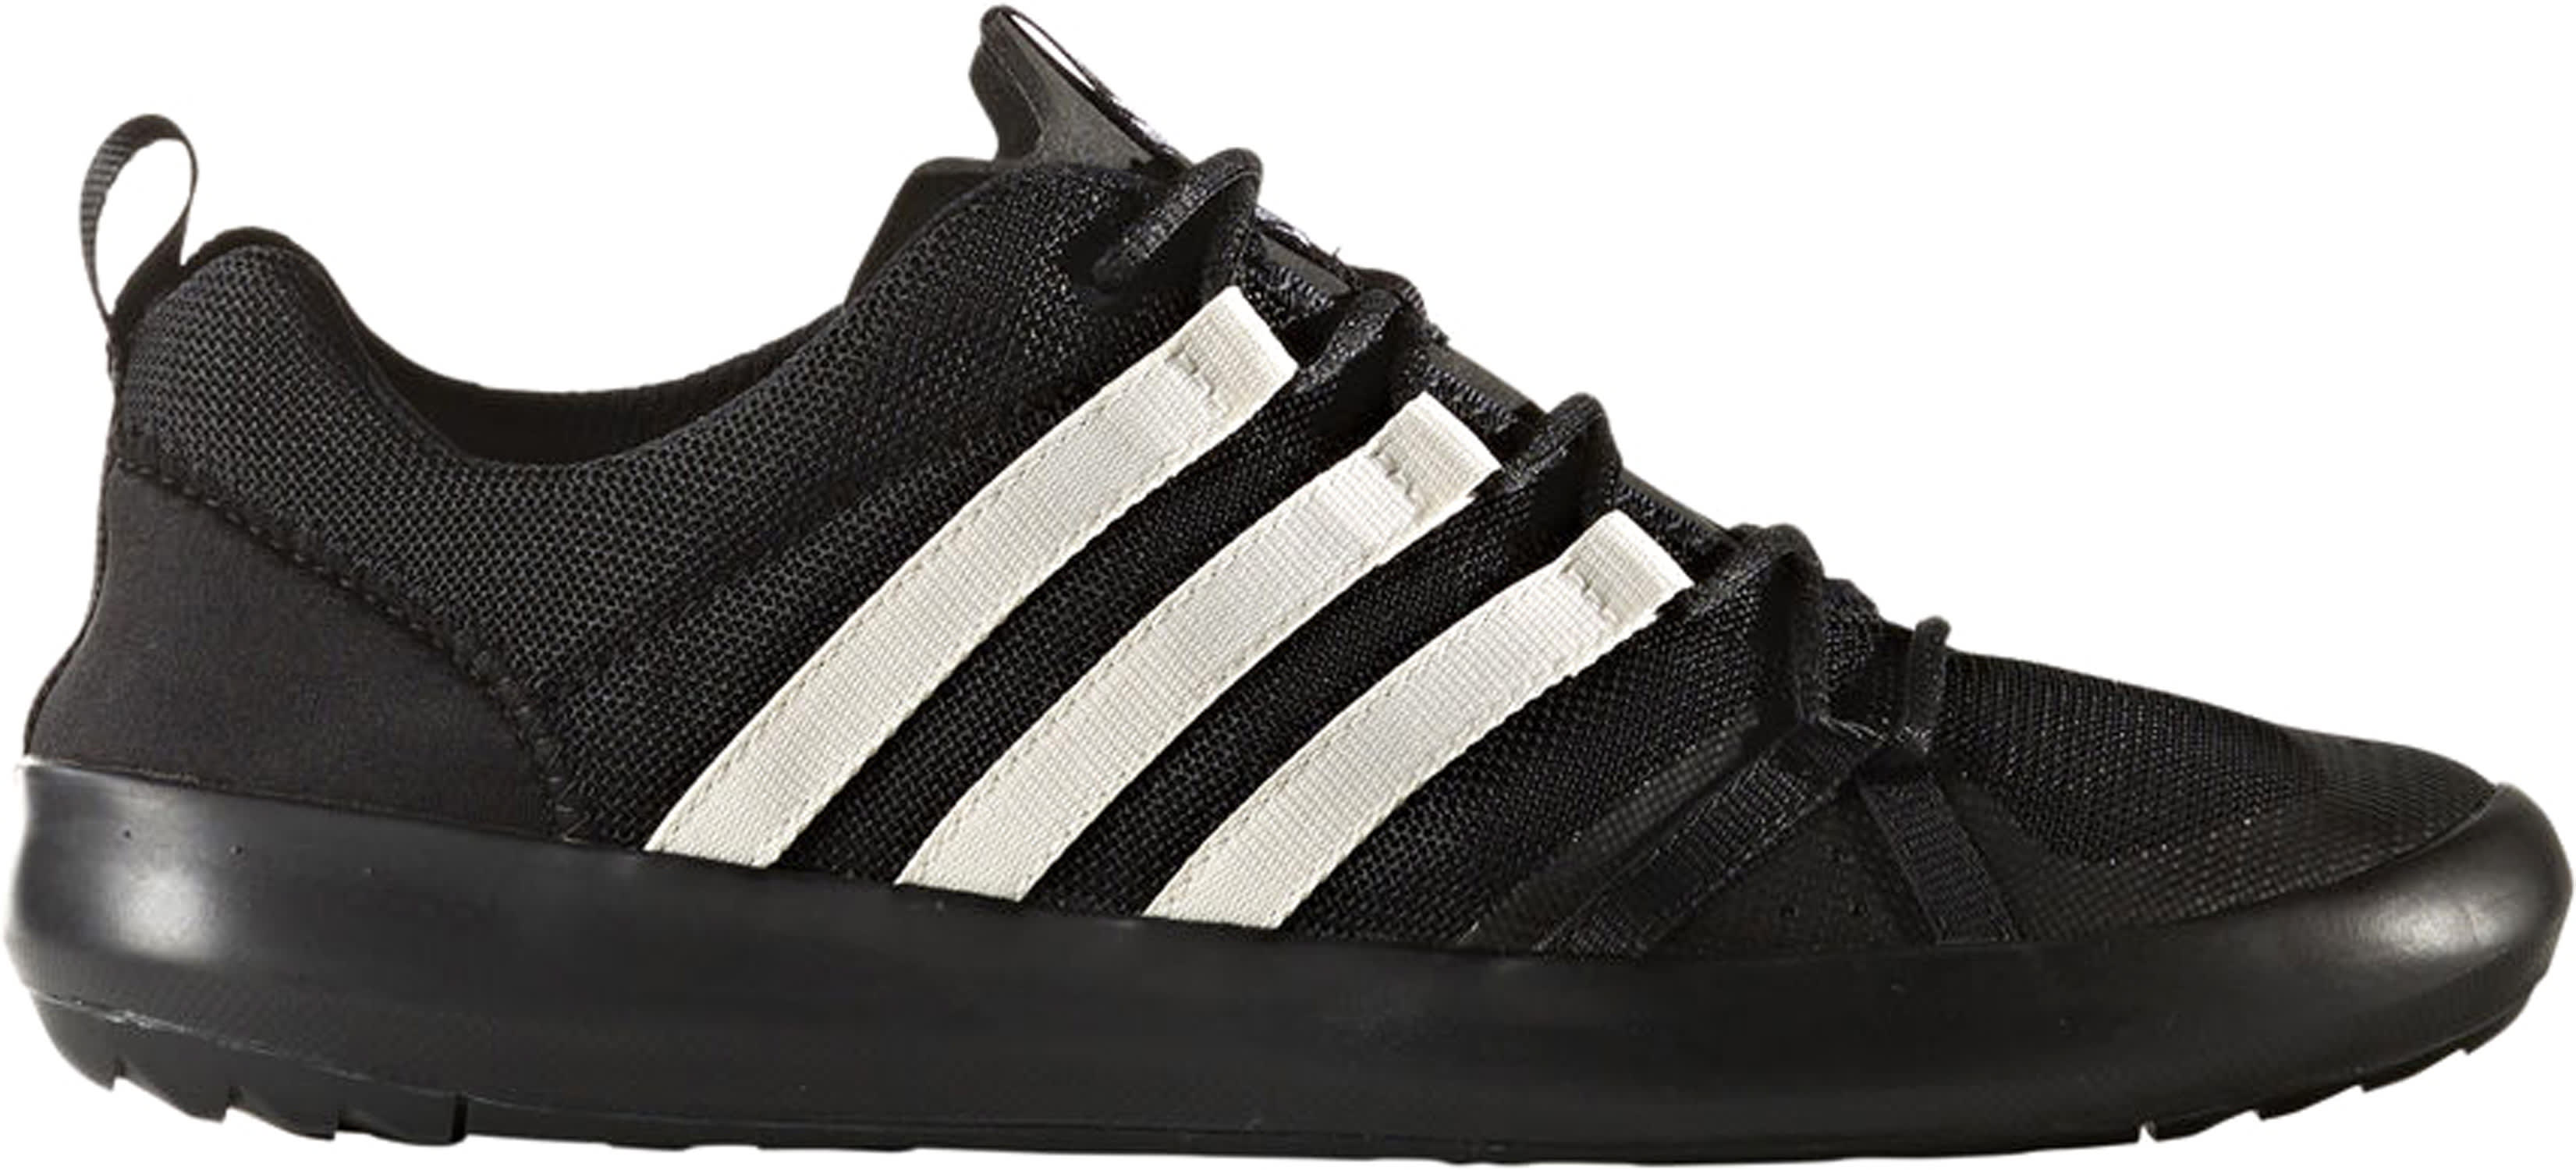 adidas climacool water shoes mens nz